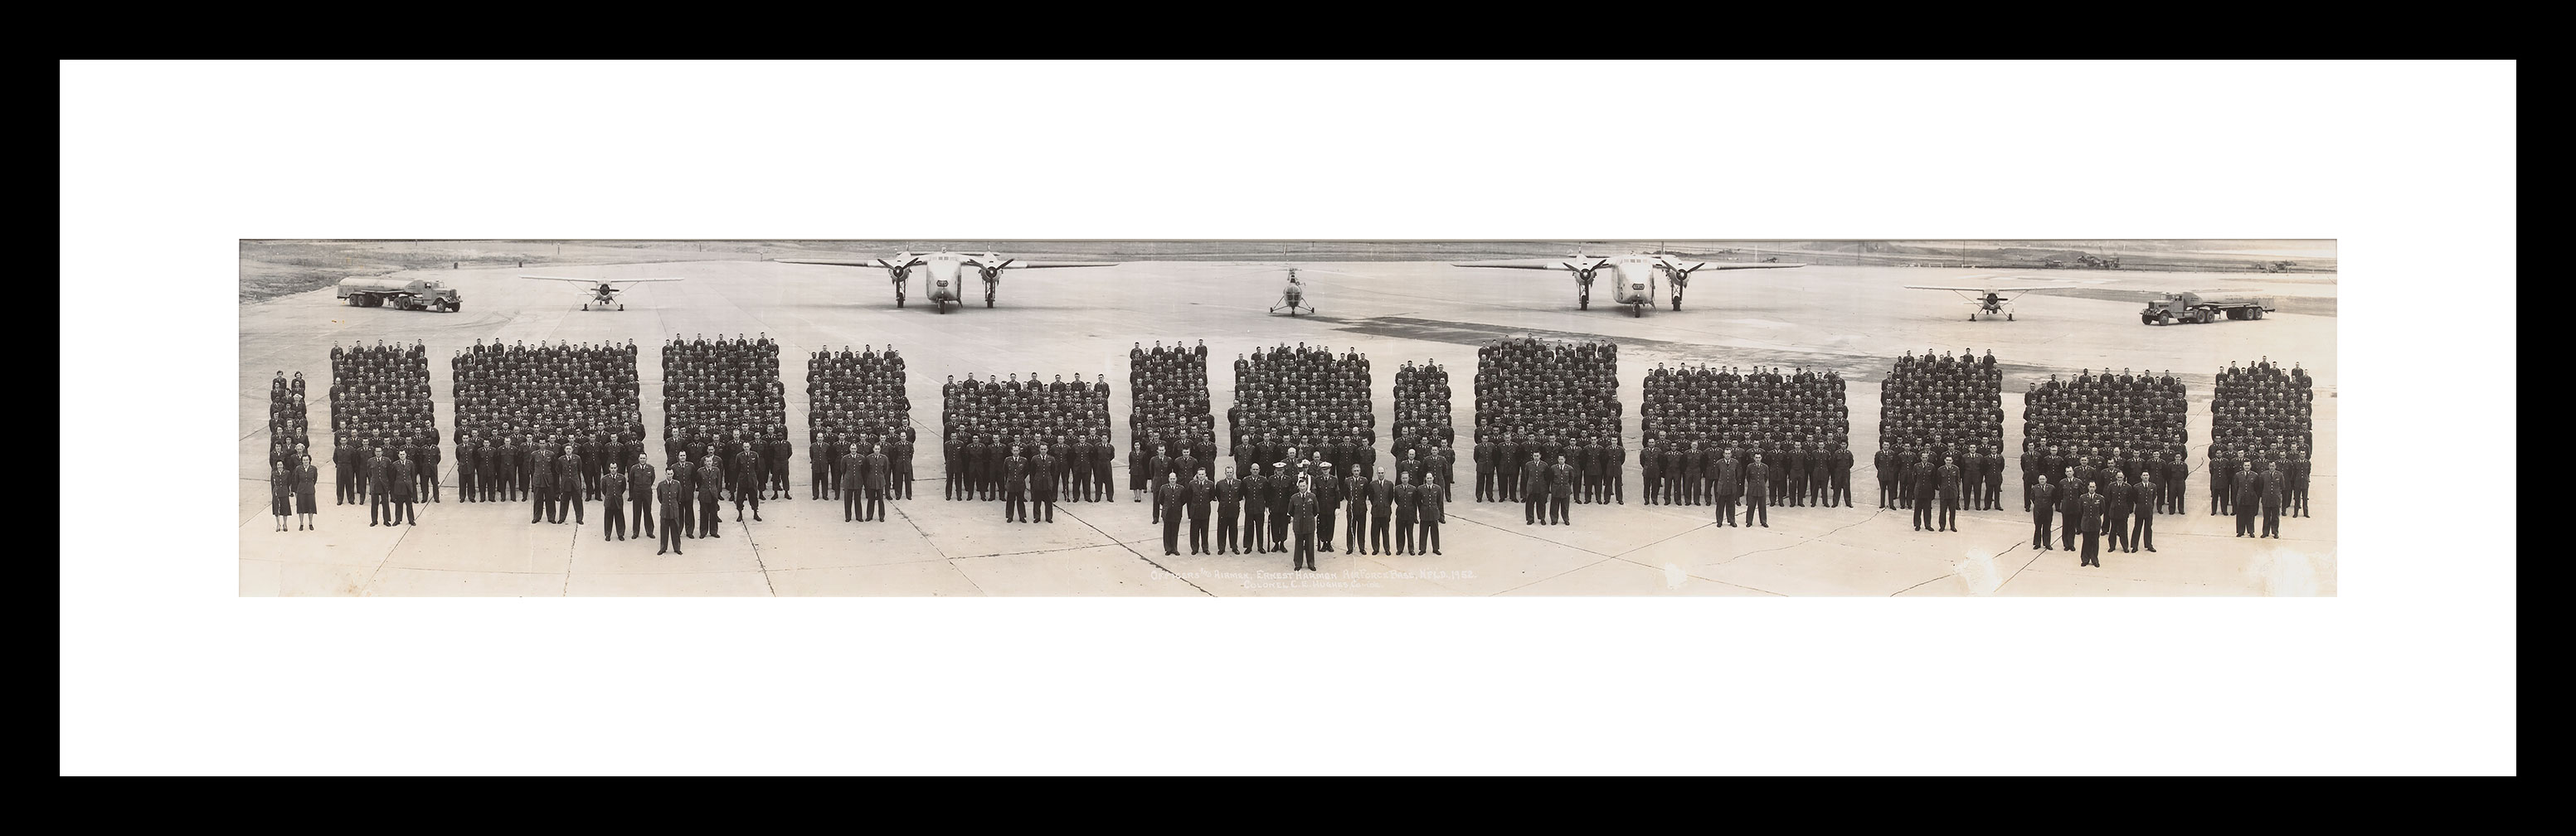 Officers and Airmen